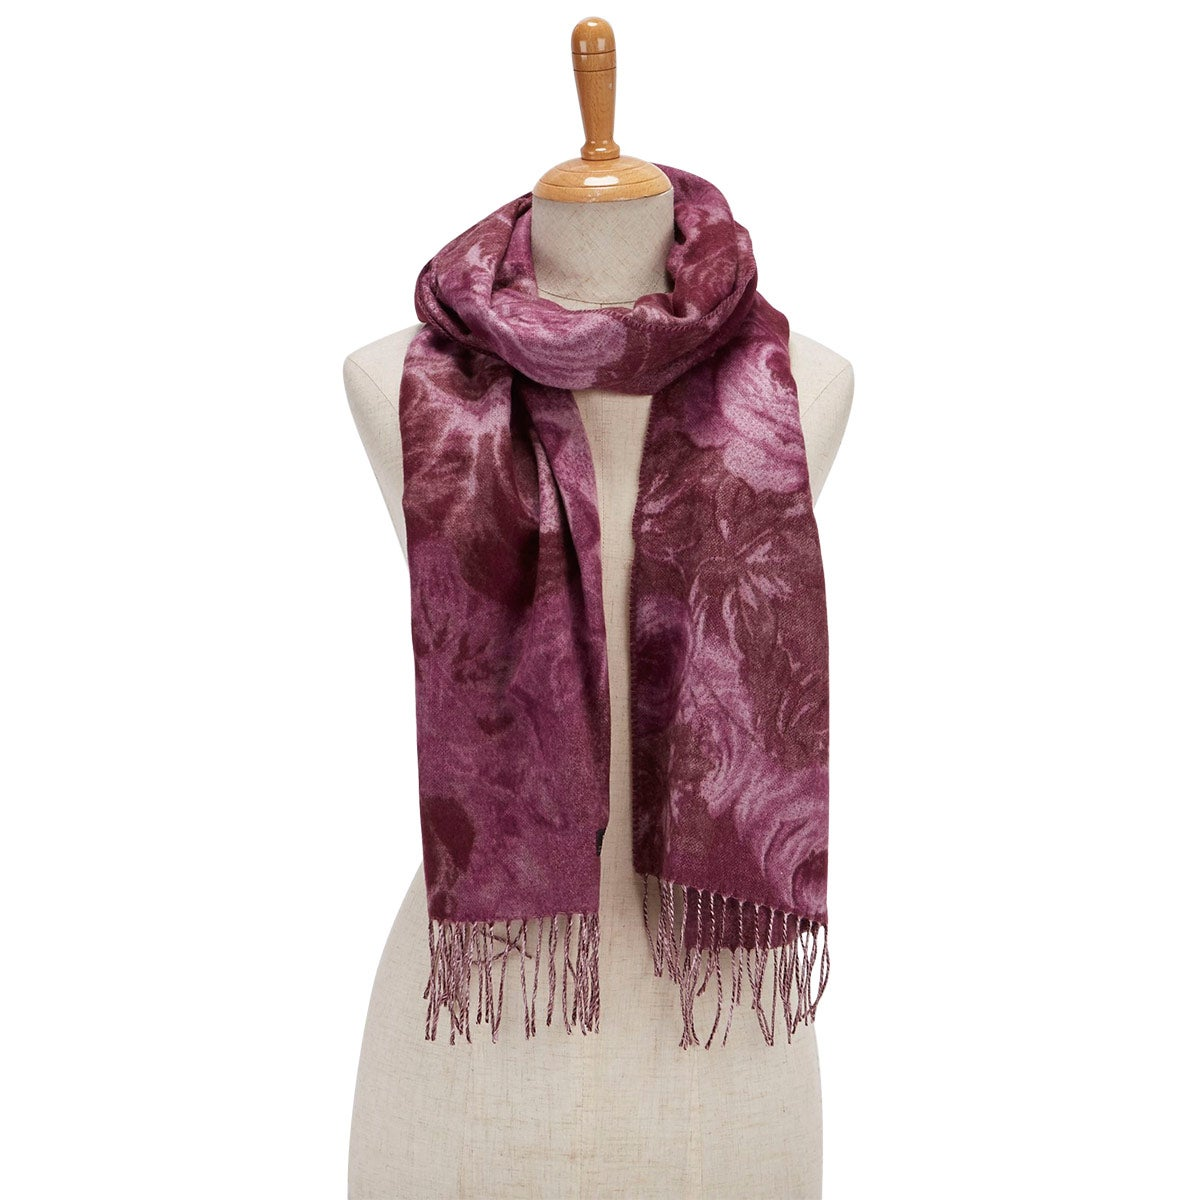 Lds Rose Bouquet wine scarf